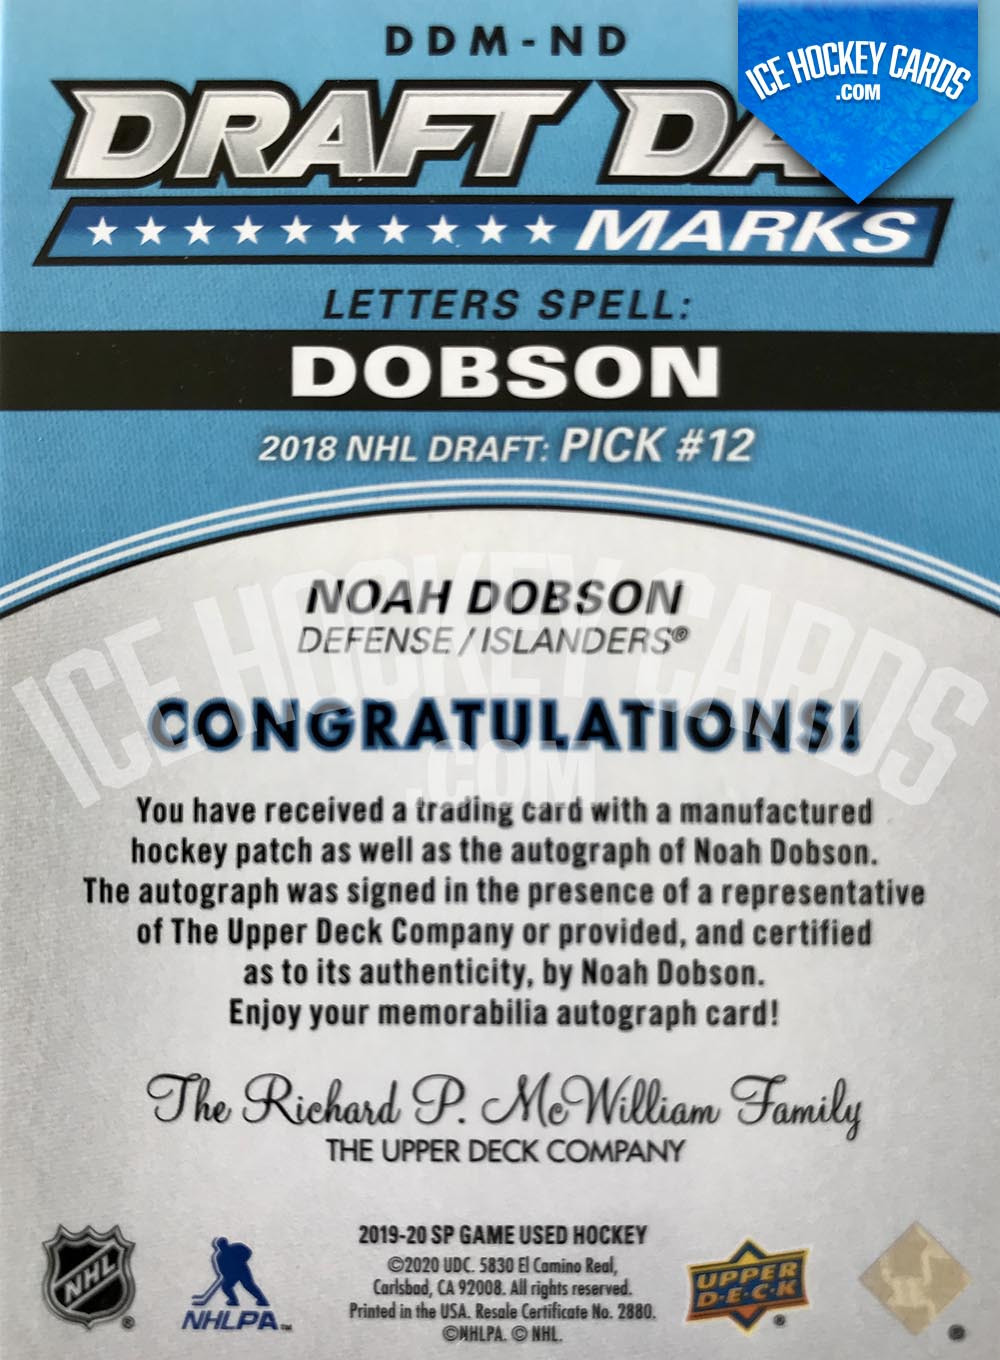 Upper Deck - SP Game Used Hockey 2019-20 - Noah Dobson Auto Patch Draft Day Marks - 2018 NHL Draft Pick #12 Rookie Card # TO 35 RARE back